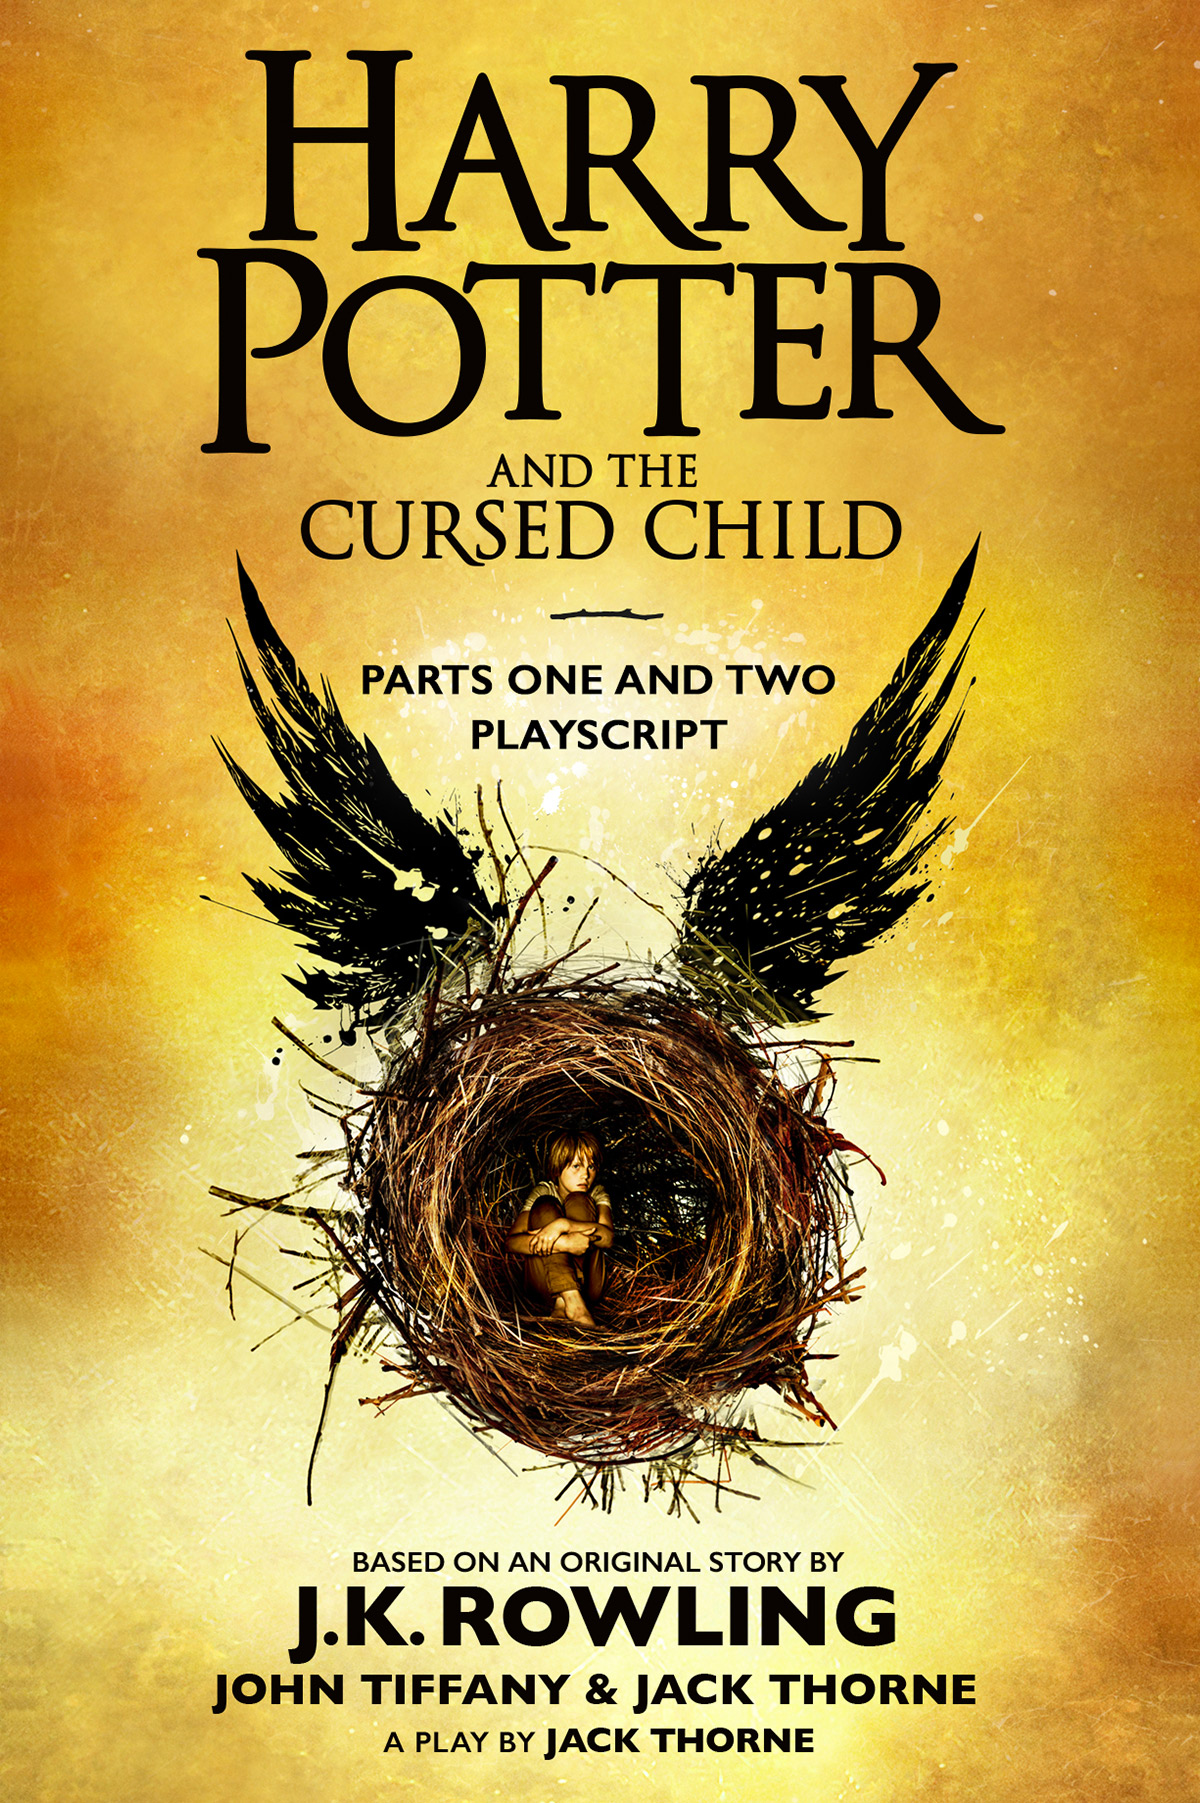 Harry Potter and the Cursed Child – Parts One and Two. Джоан Кэтлин Роулинг, Джон Тиффани, Джек Торн